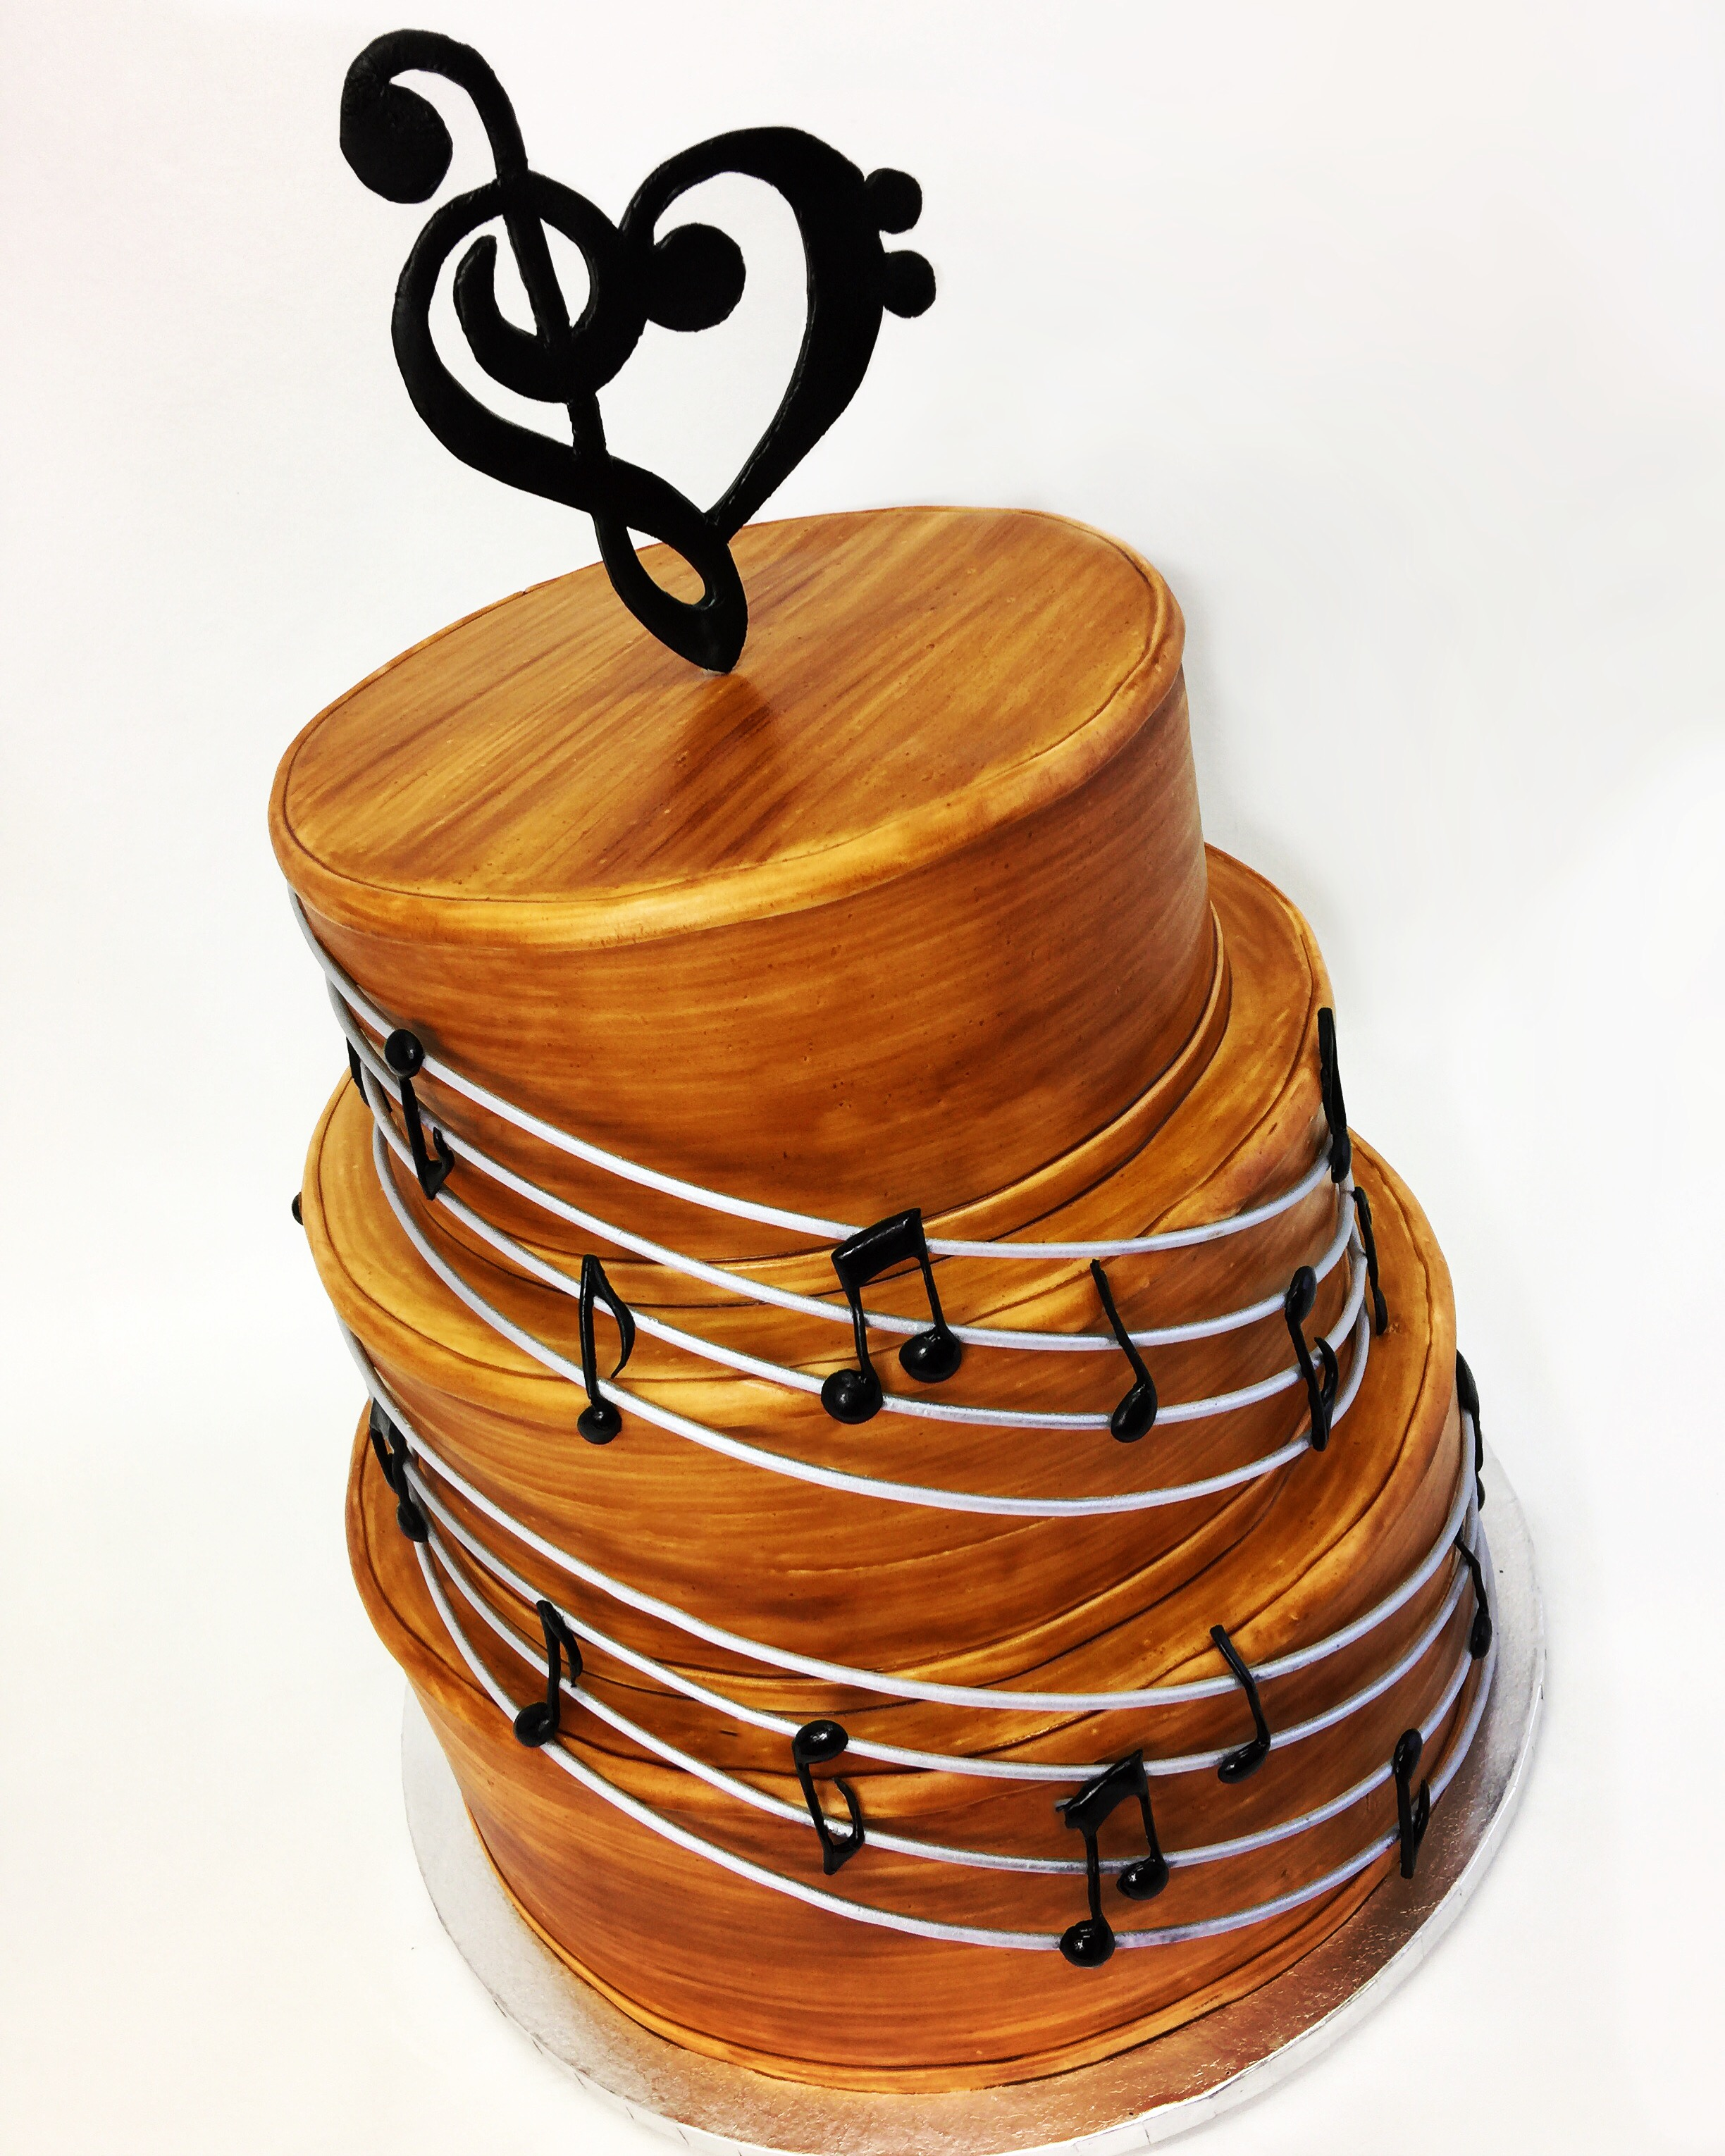 Bass Cello Music Cake